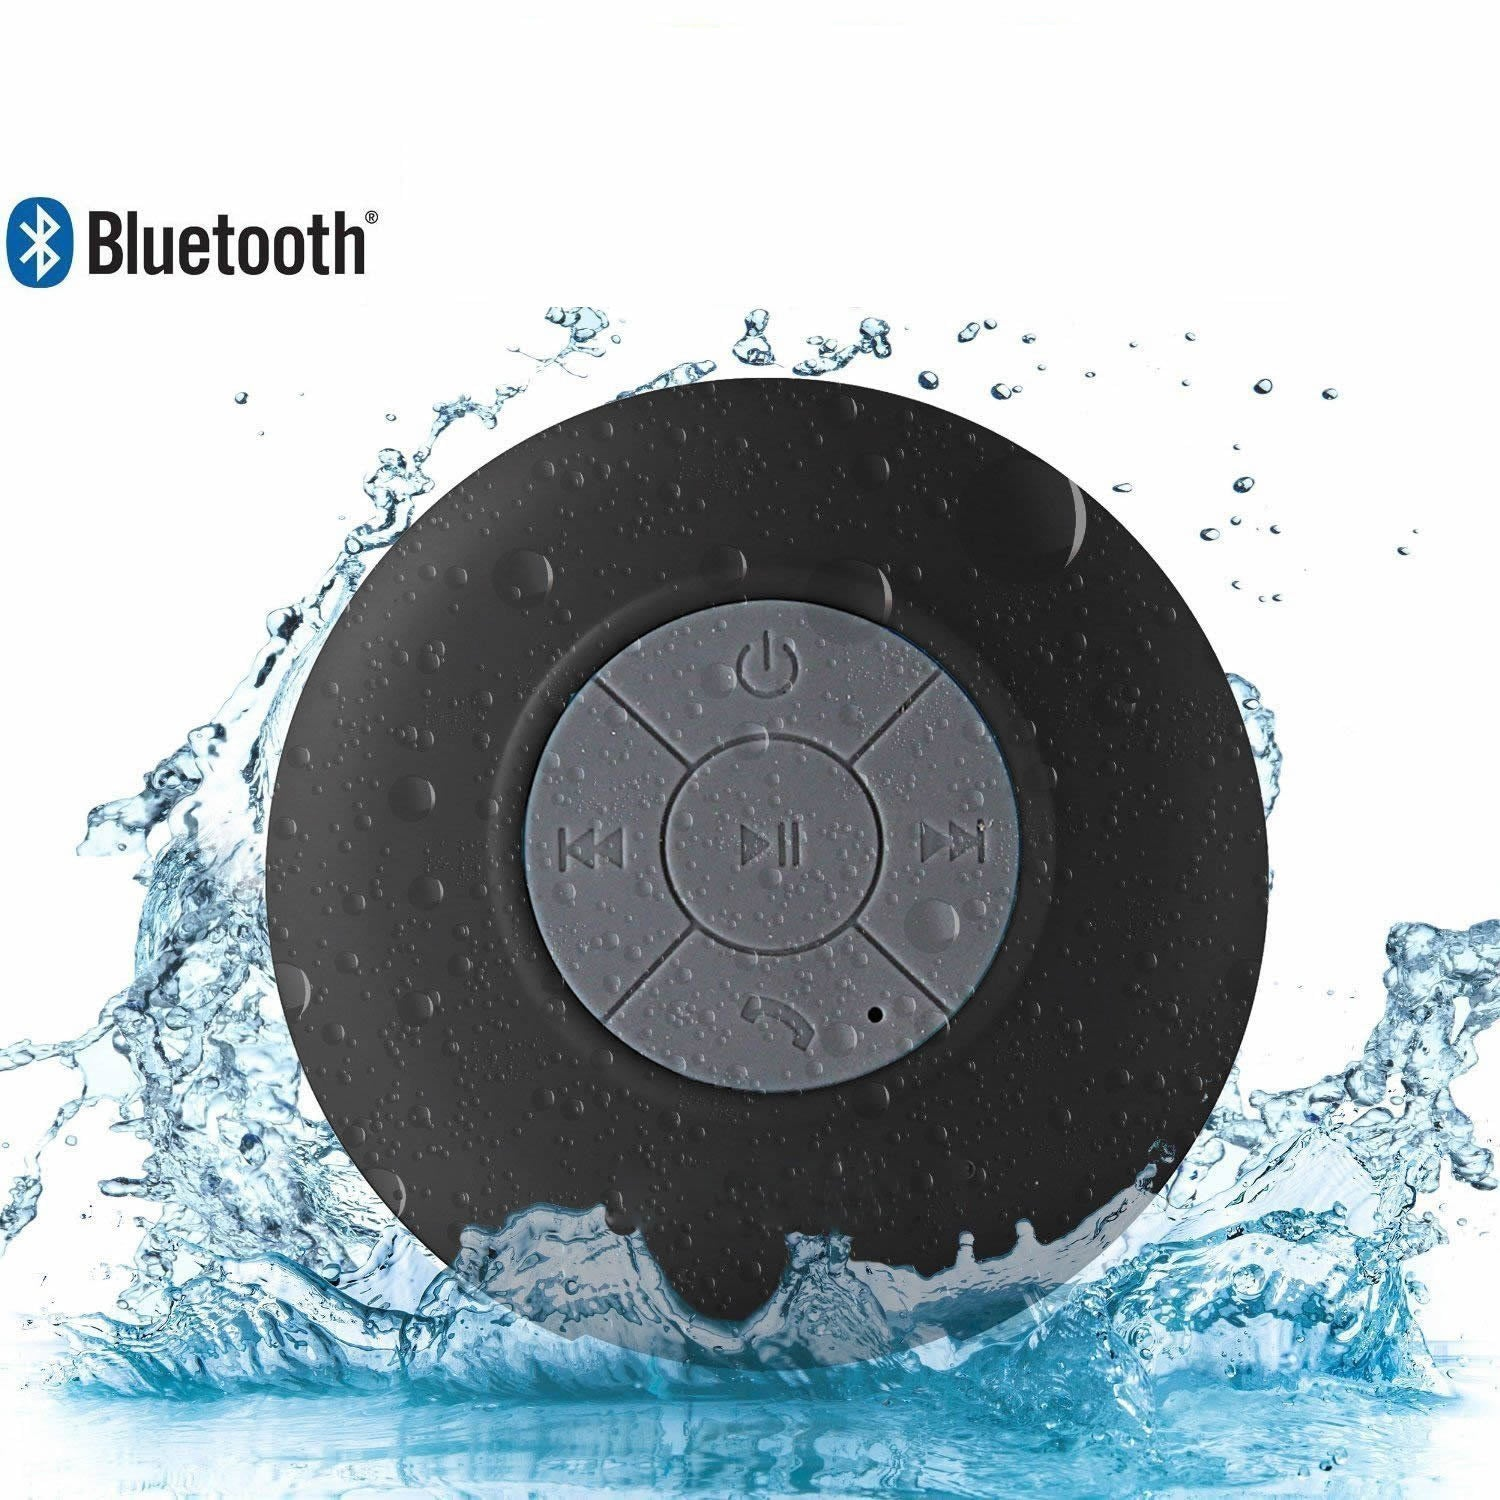 shopify-Singing in the Shower - The phone speaker in shower-6